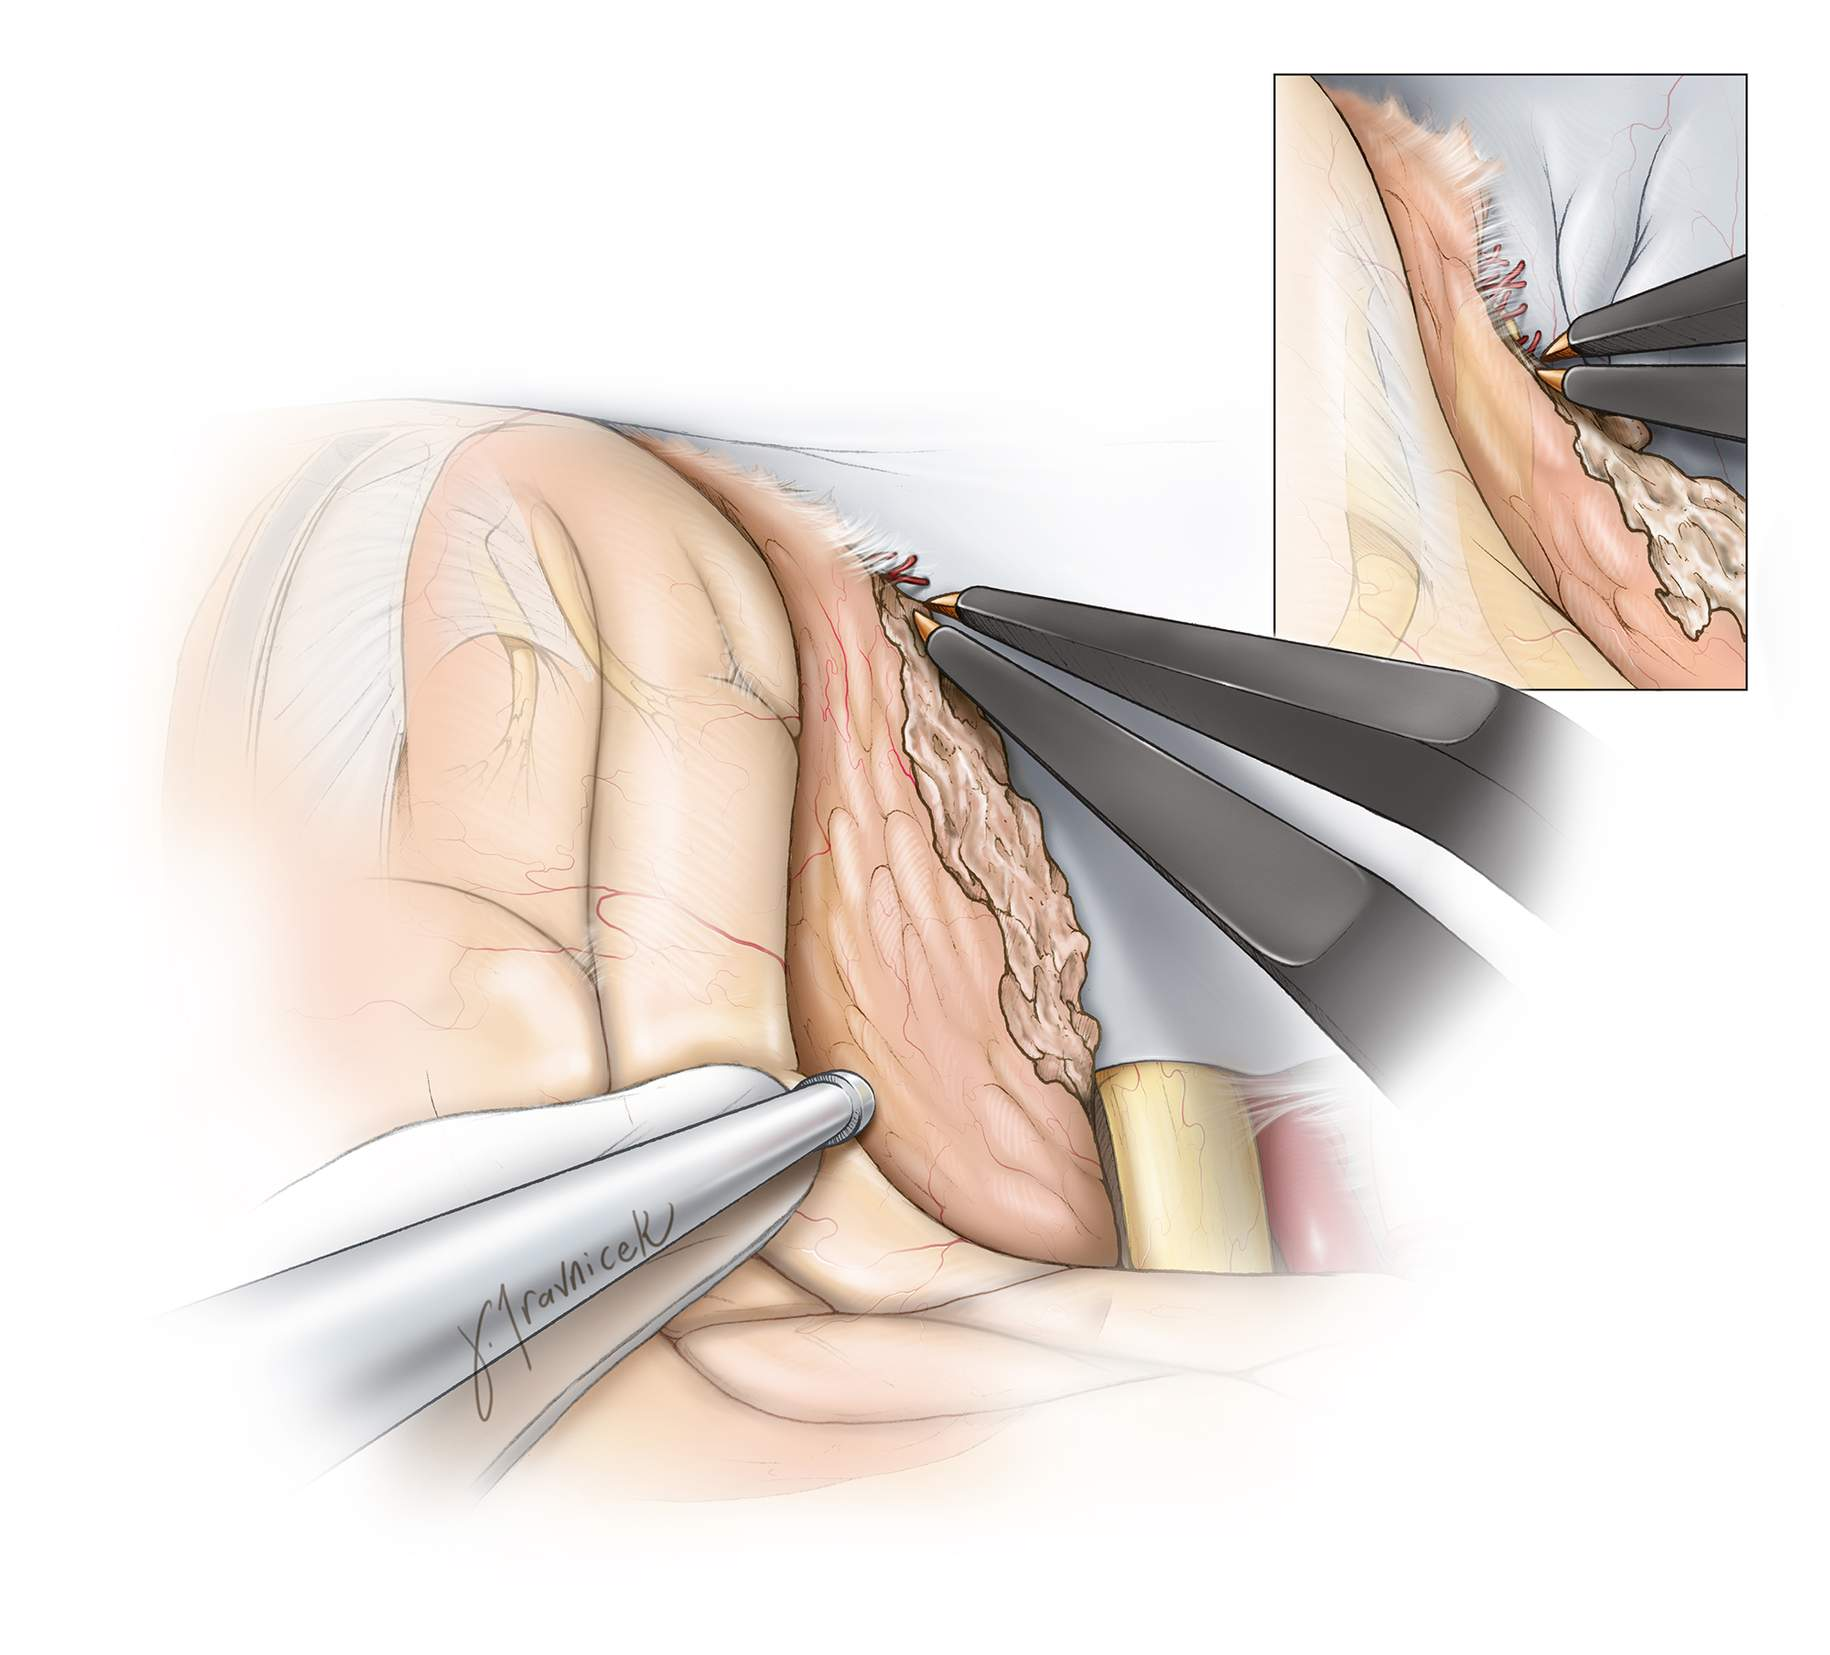 Figure 10: Next, the base of the tumor is thoroughly devascularized as far as possible to expose the contralateral orbital roof.  This maneuver is facilitated by gentle mobilization and rotation of the tumor superiorly and laterally, usually feasible because of the previous measures employed to decrease cerebral tension.     This step is critical for advancing the efficiency of tumor resection and minimizing blood loss, especially in the case of a large vascular tumor. The tumor is shaped like a mushroom and the dural attachment at its base is smaller than its dome. Heat injury to the optic nerves and carotid artery is avoided.     The ethmoidal artery feeders (inset image) along the mid anterior skull base can lead to torrential bleeding because of the avulsion of these vessels during tumor mobilization. I pack Gelfoam powder spheres soaked in thrombin into the bleeding sites within the bone after the skull base has been cleared from the tumor; some pressure and patience often achieves hemostasis. I have even used Bovie cautery to stop bleeding there as these vessels retract into the skull base and their control can be difficult.